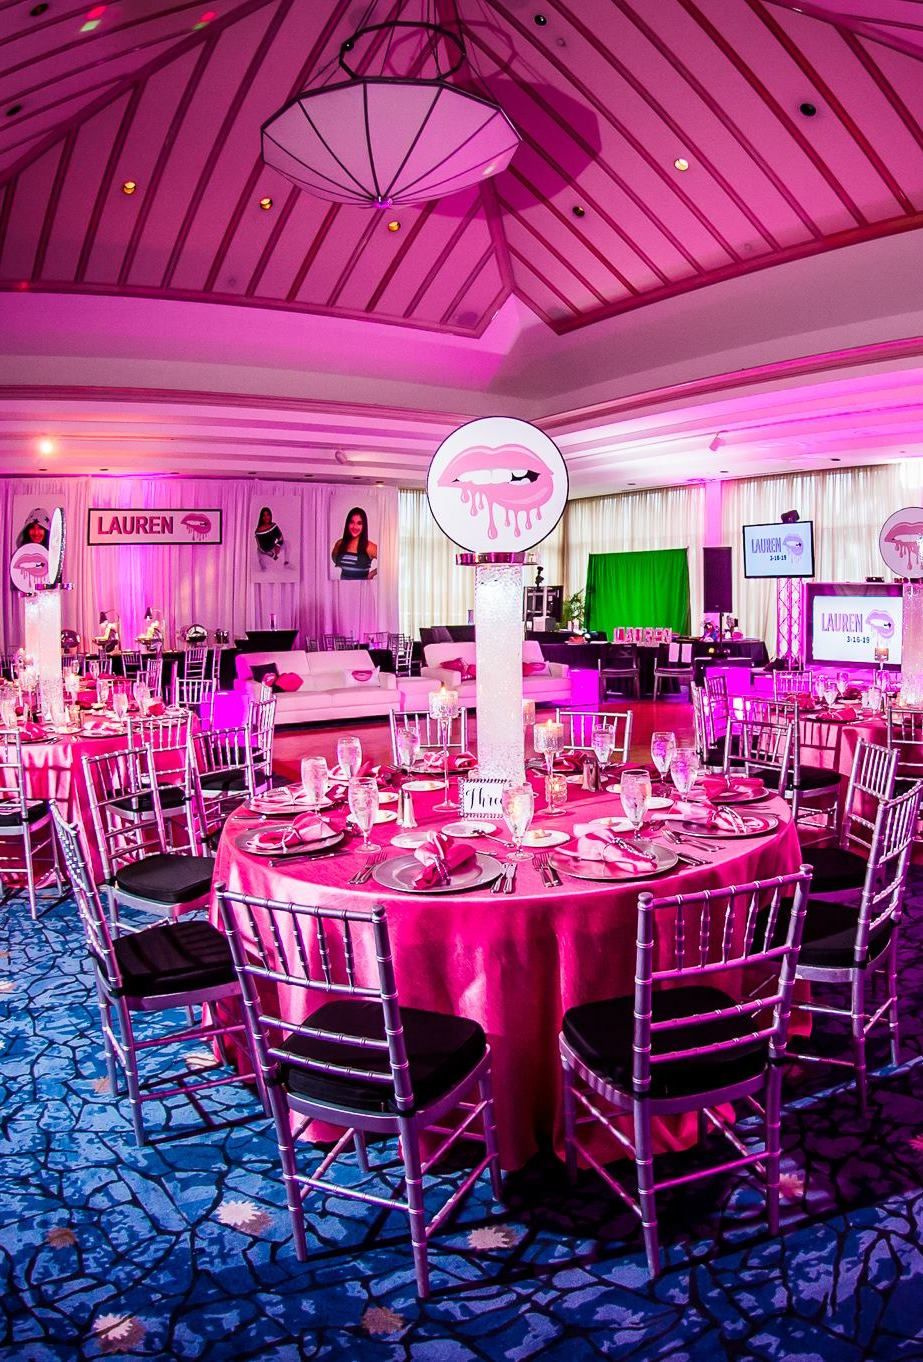 Bat mitzvah party ideas for the girl who loves pink and